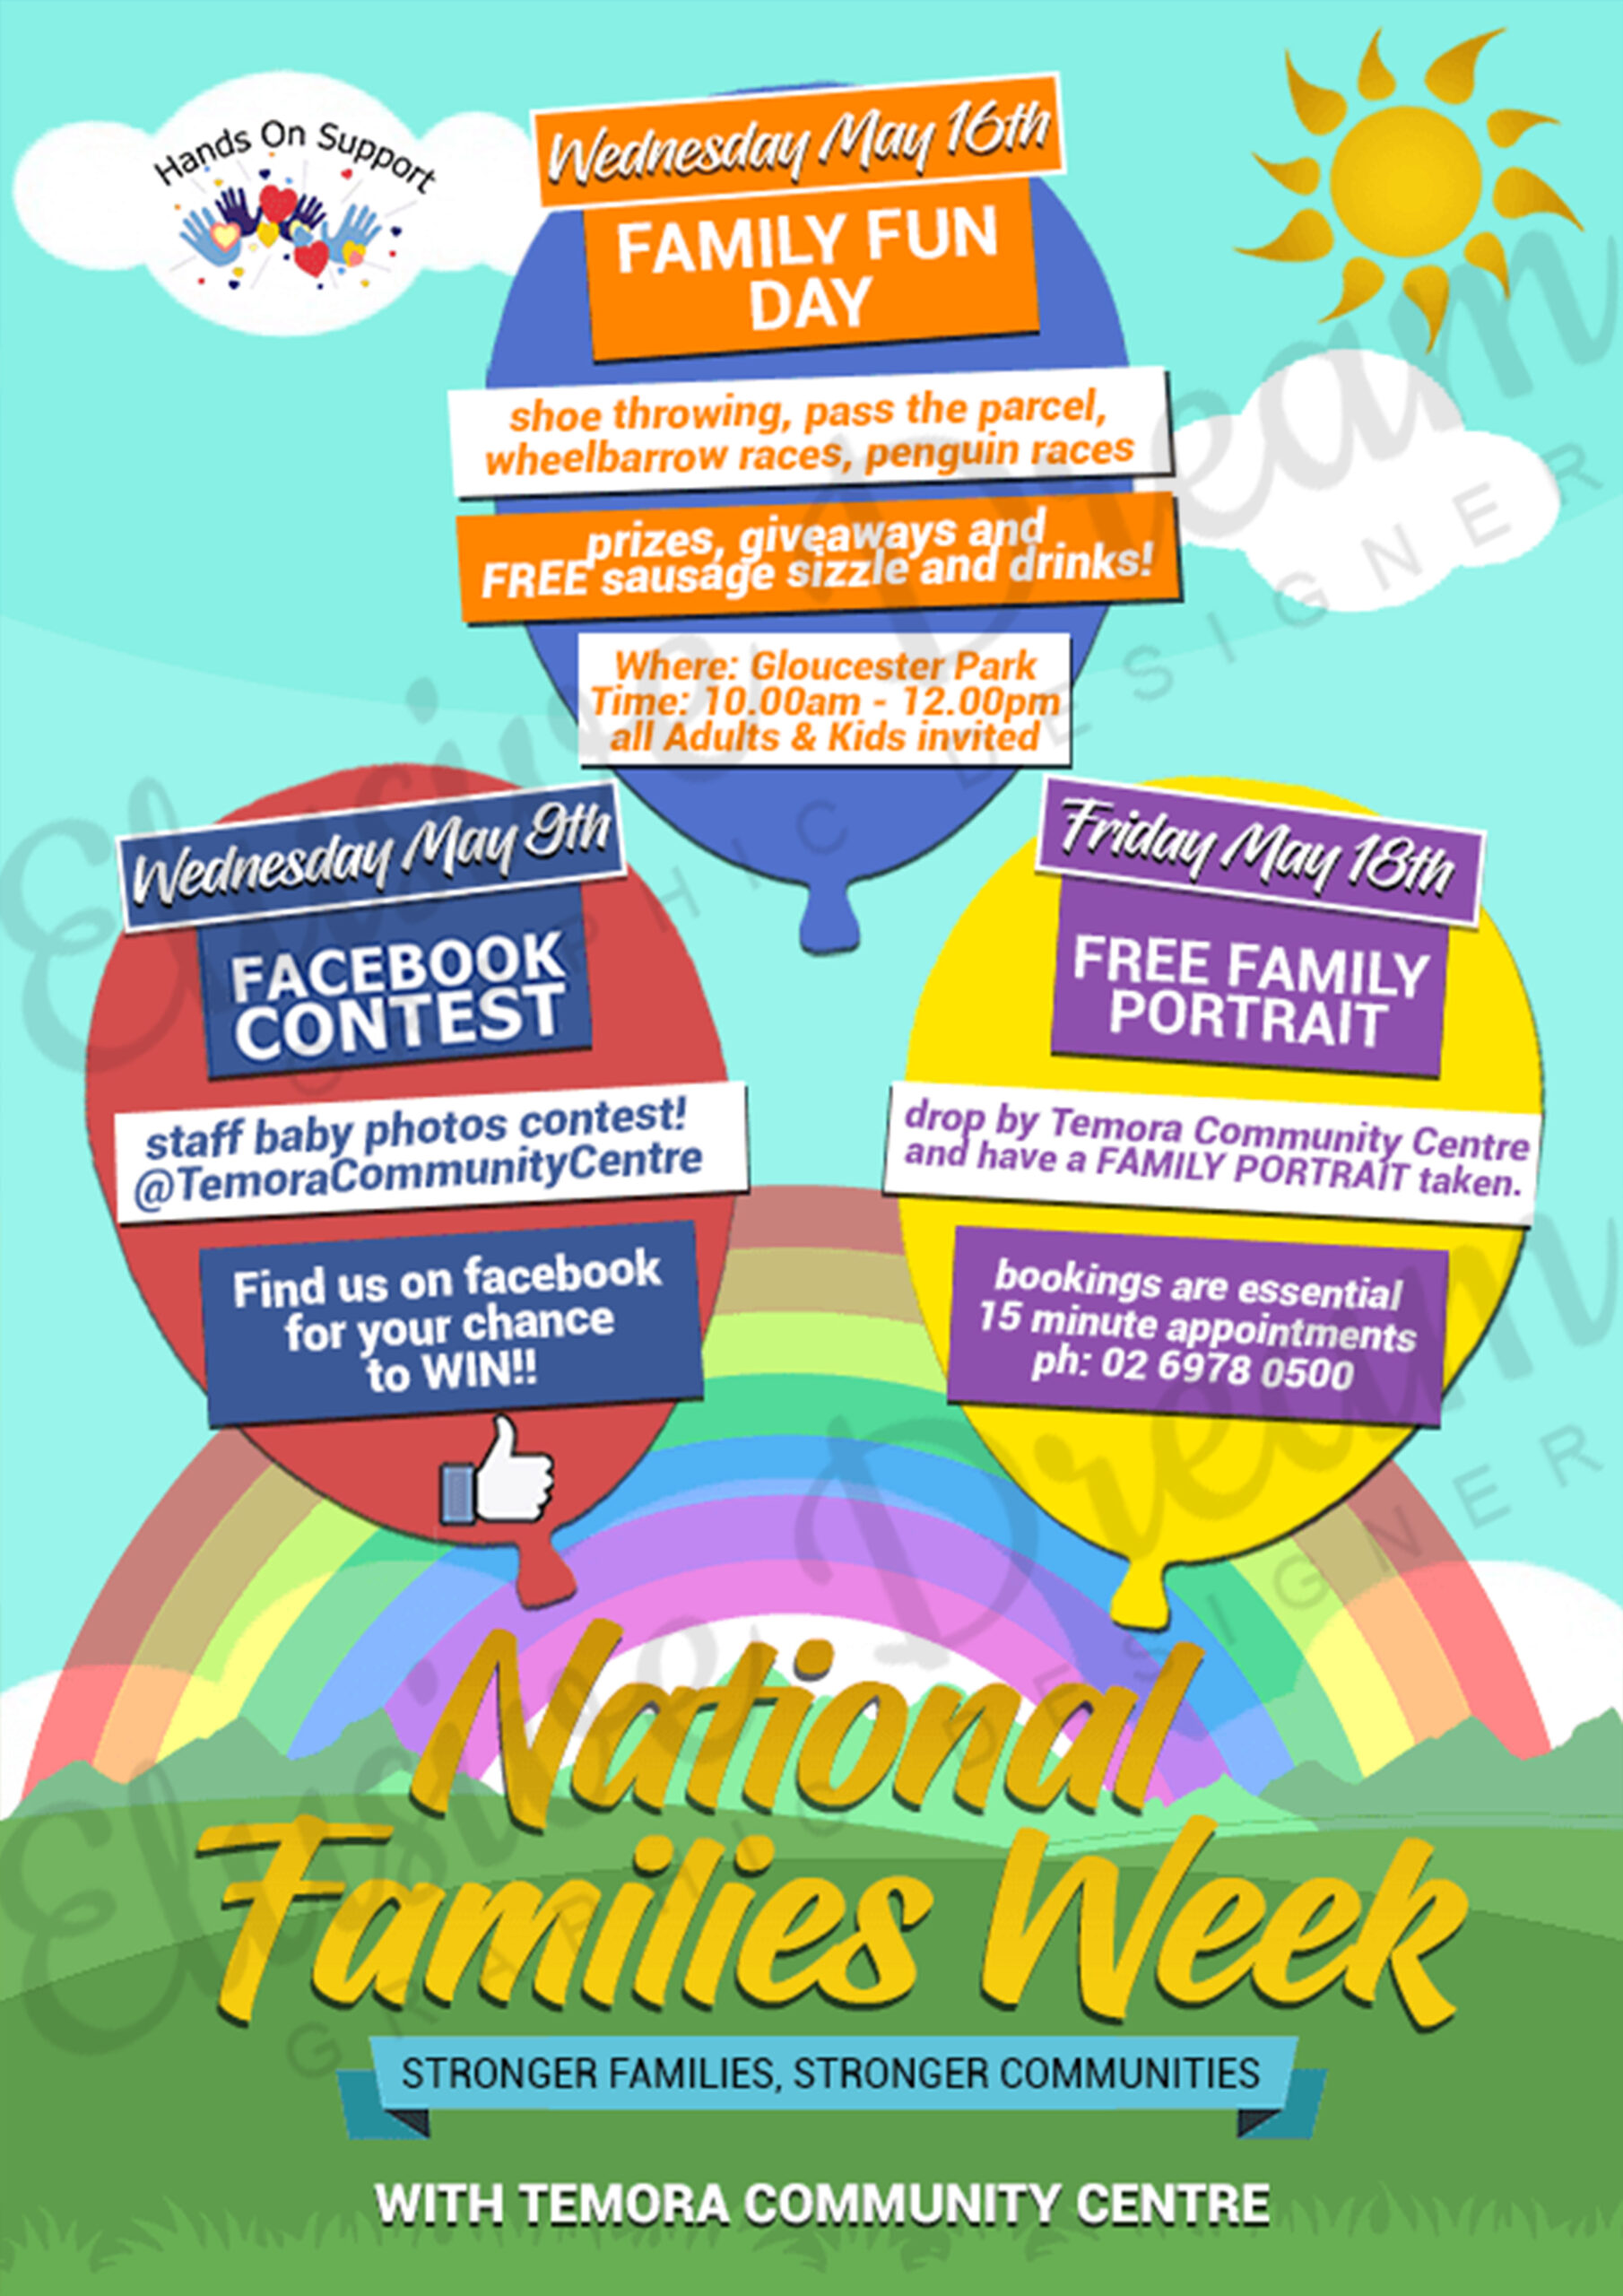 Nathional Familes Week Poster 2018.png scaled